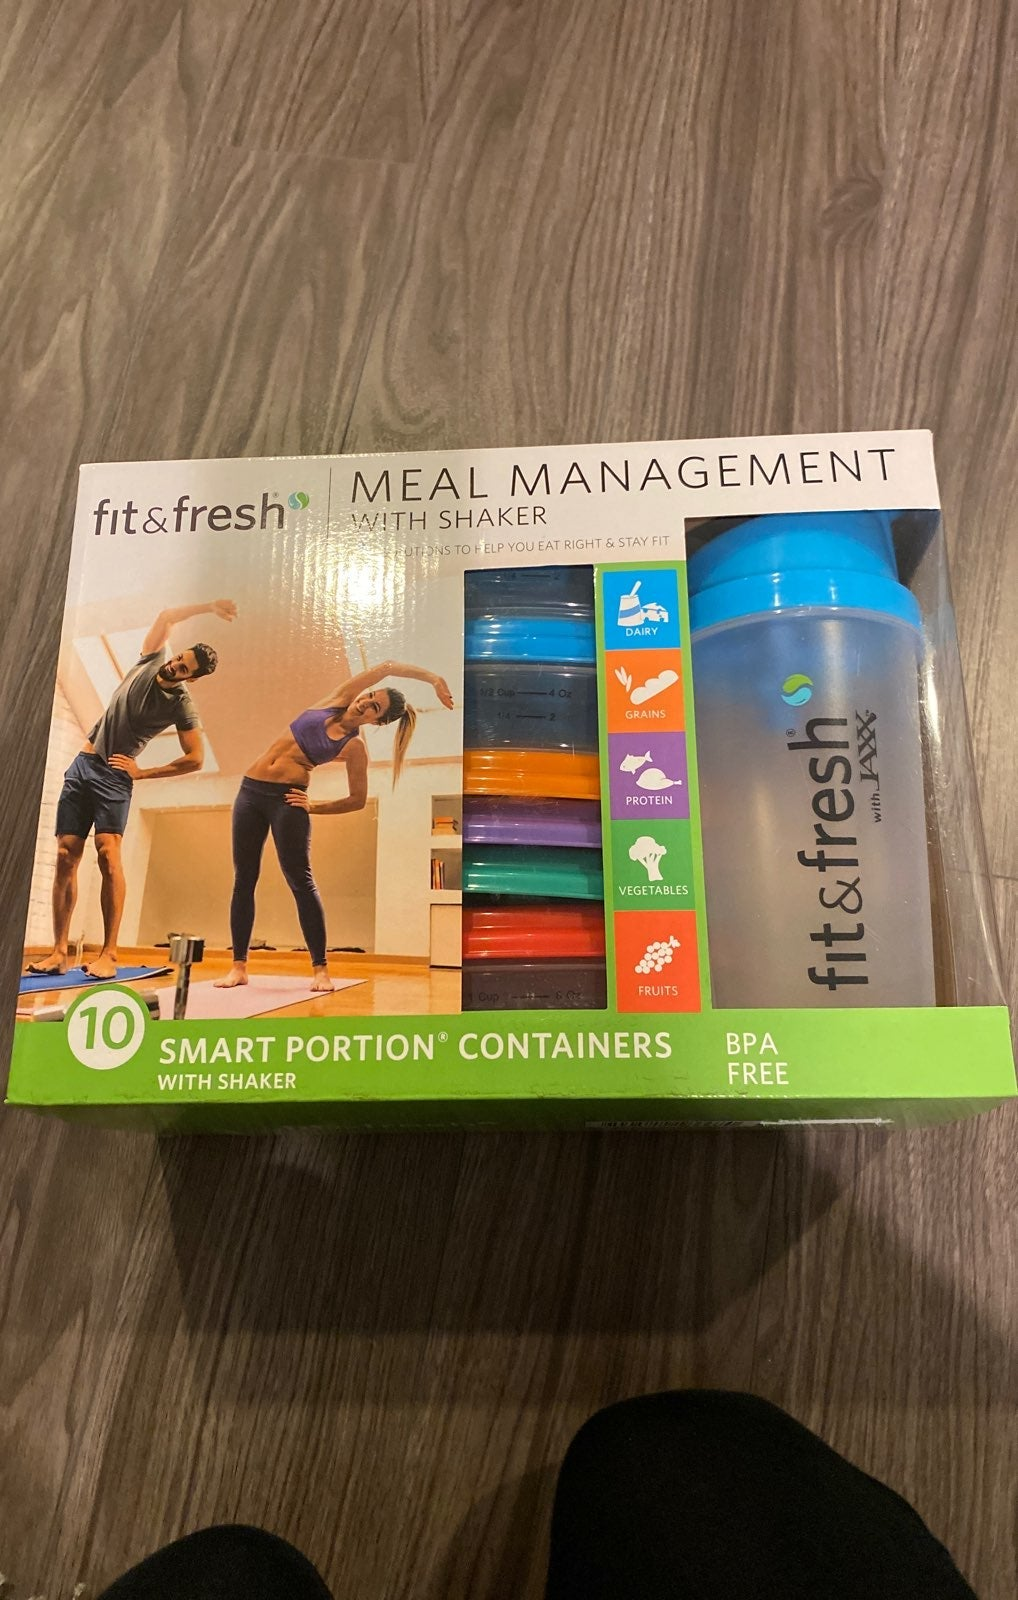 Fit & Fresh- Meal Management with shaker